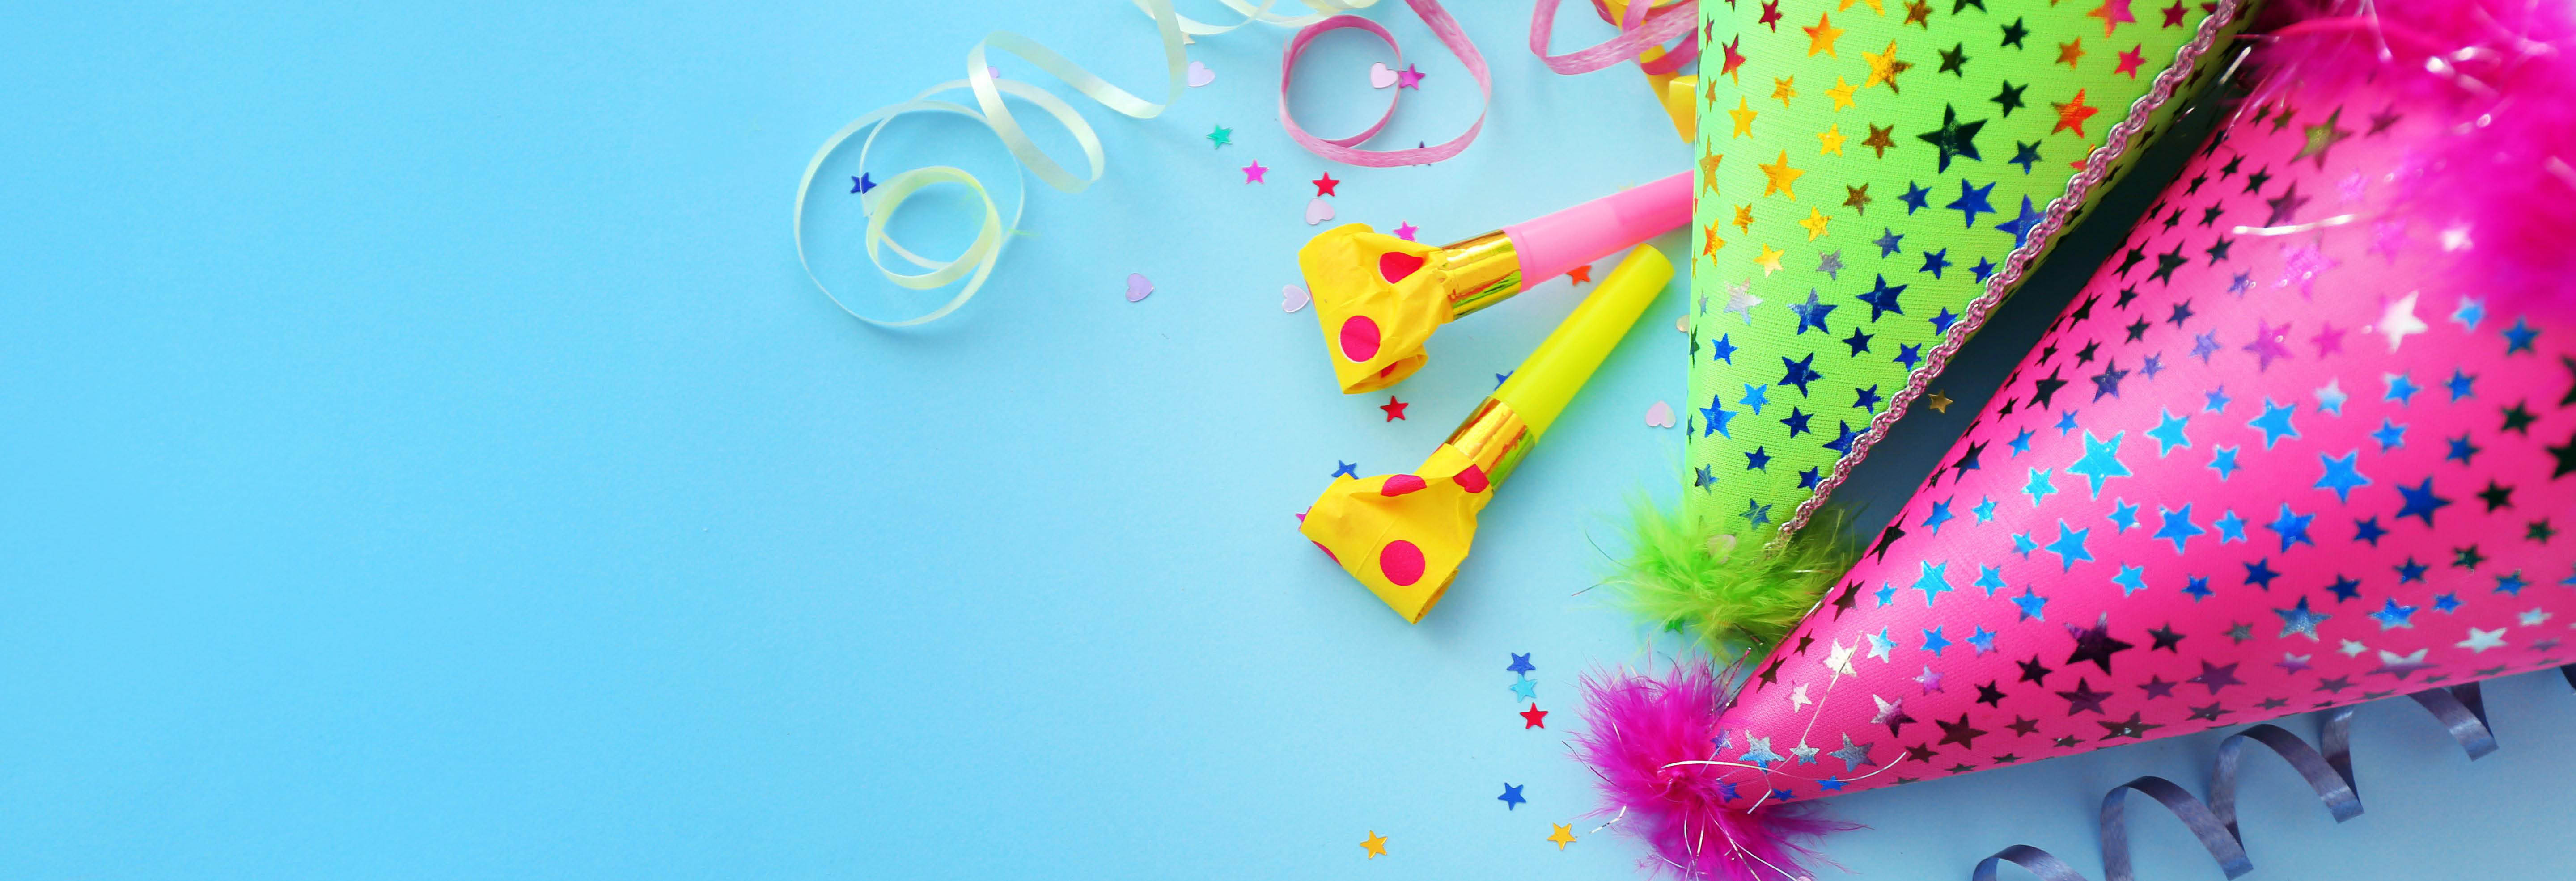 sgs paper, balloons,party supplies,plates,cups,utensils,table covers,napkins,wedding accessories